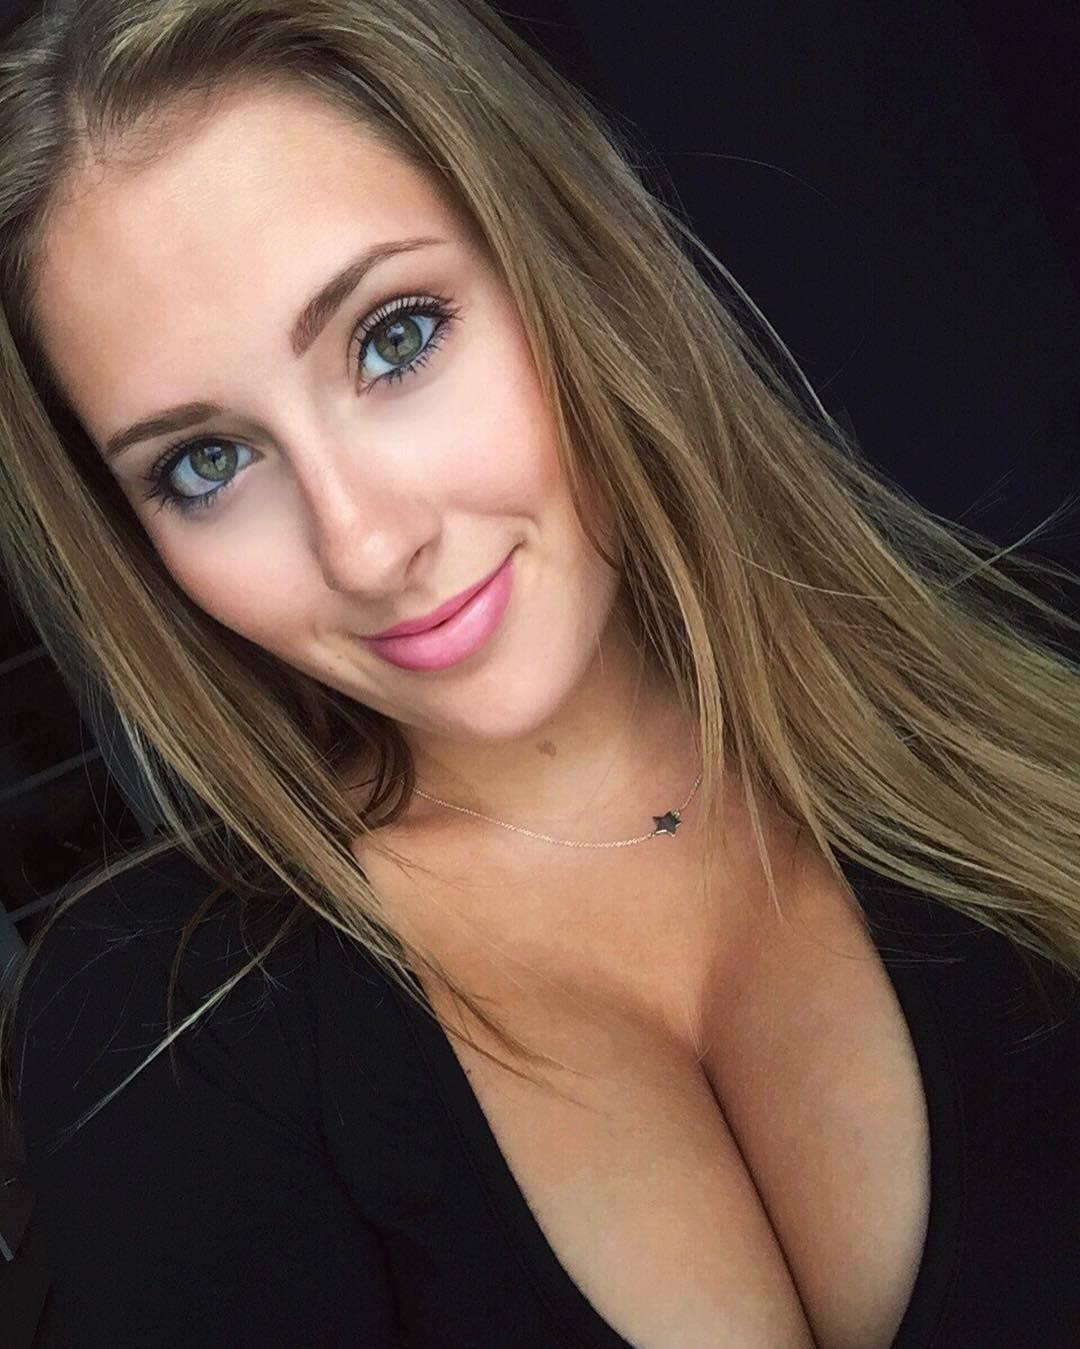 Cleavage Becca Brown nude photos 2019